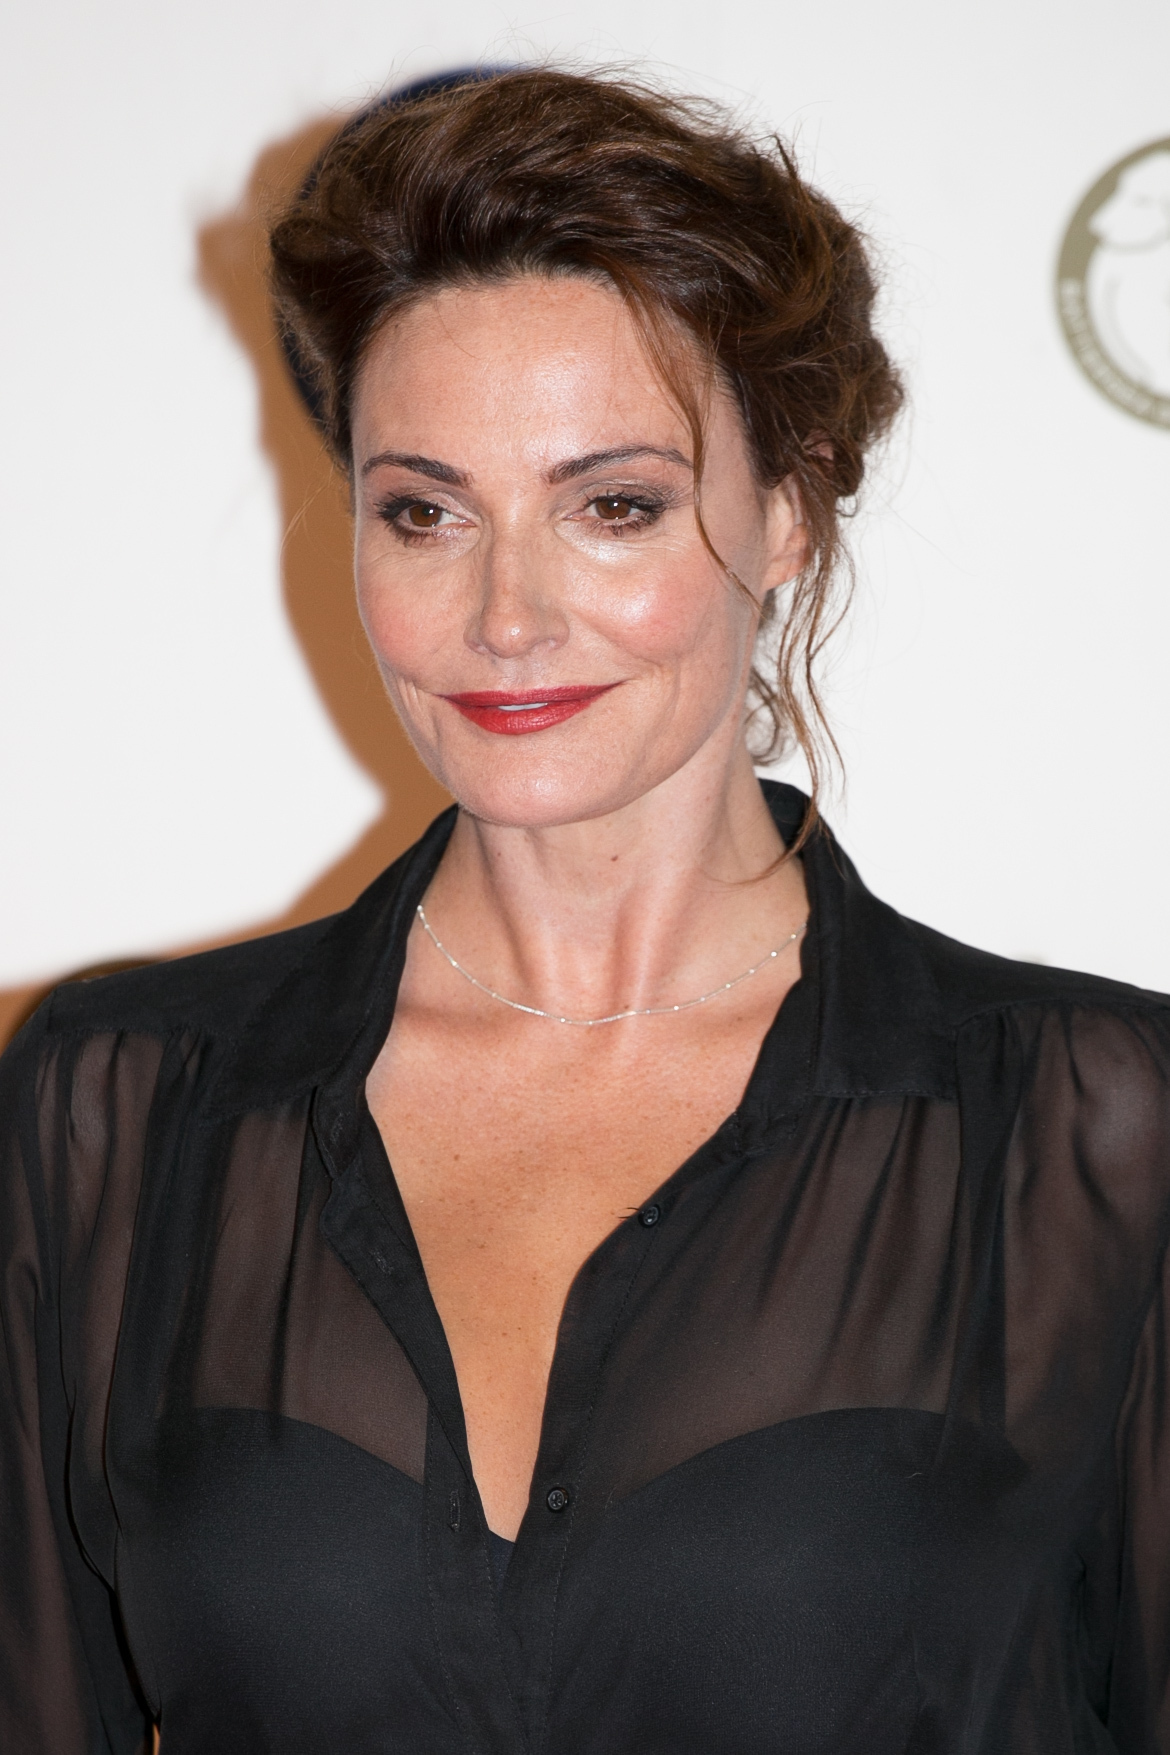 Sarah Parish will undergo surgery after injuring her leg while attempting to snowboard on a